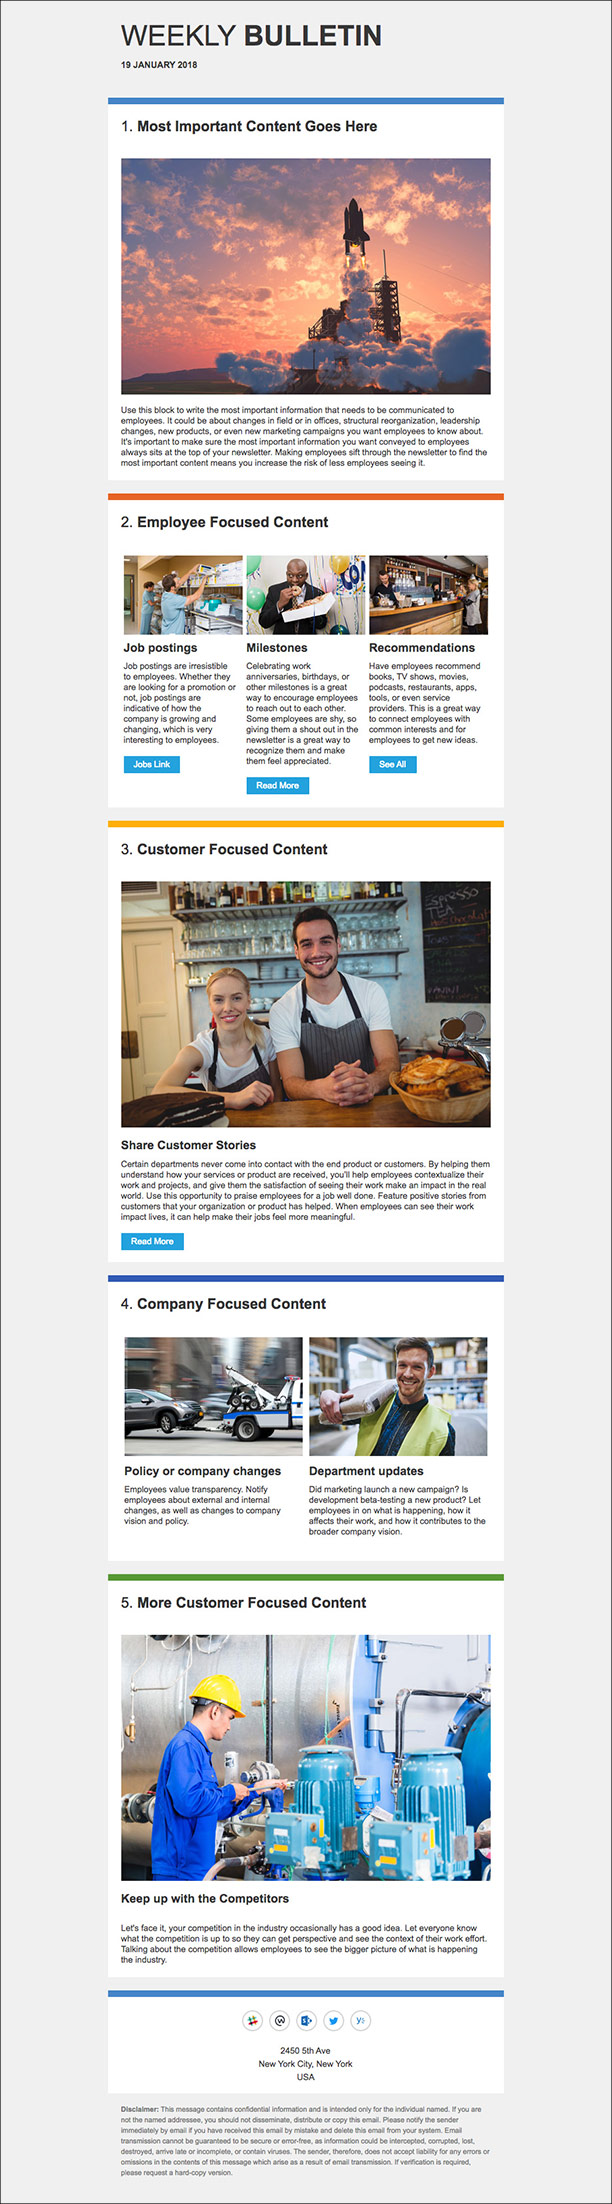 Internal Newsletter Templates For Outlook That Employees Will Love - Internal email newsletter templates